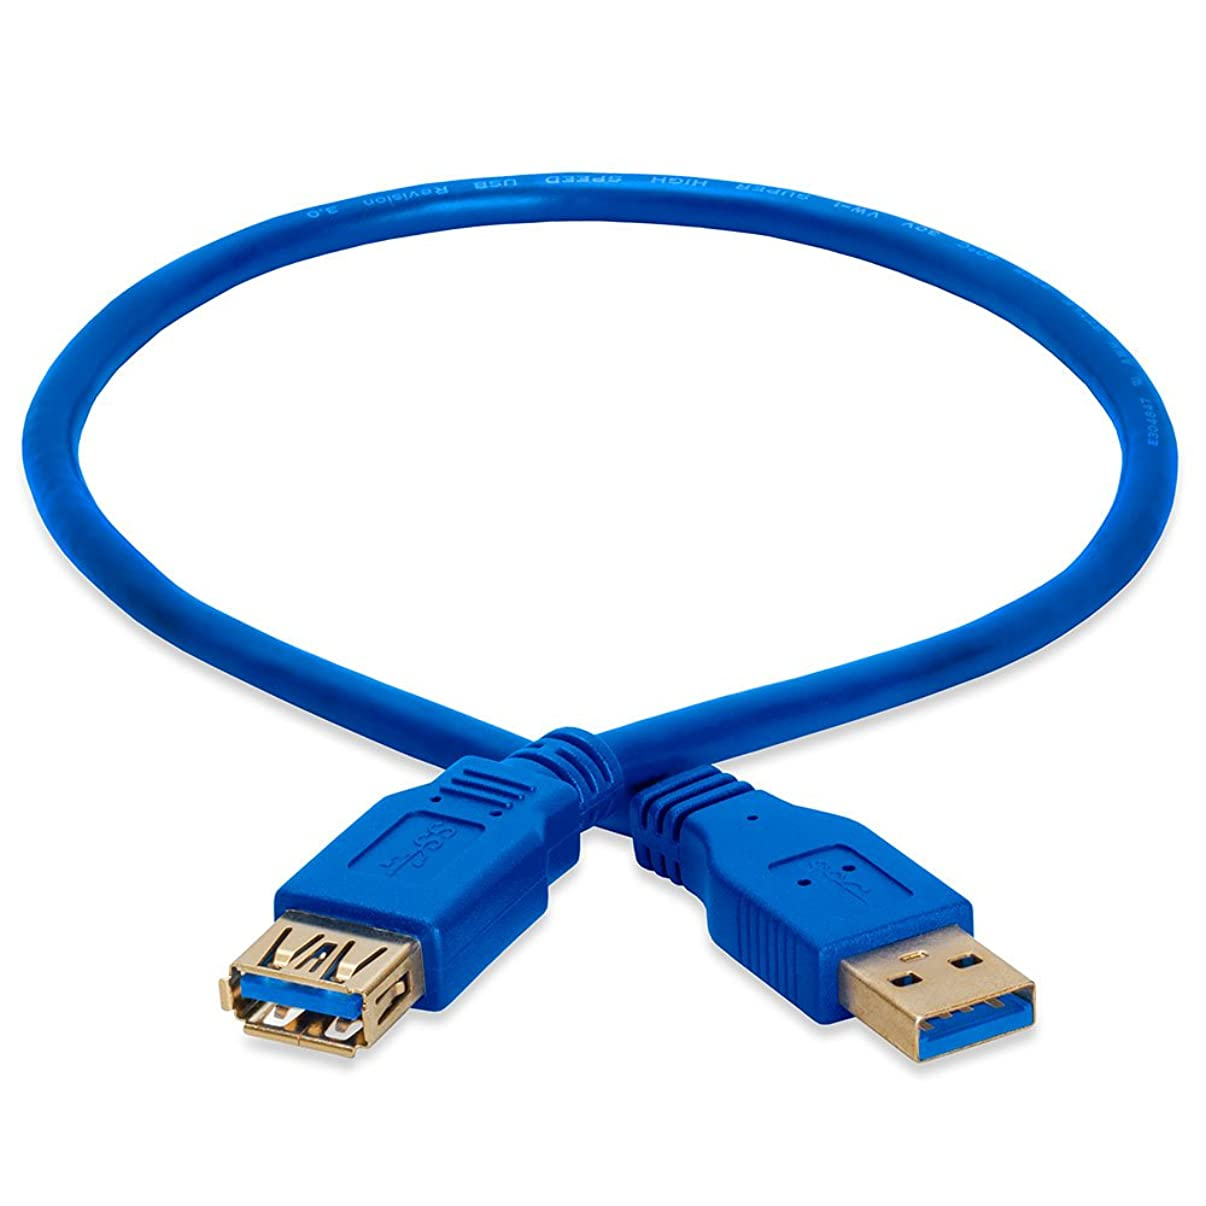 Cmple - USB 3.0 A Male to A Female Extension Gold Plated Cable - 1.5FT (Blue)